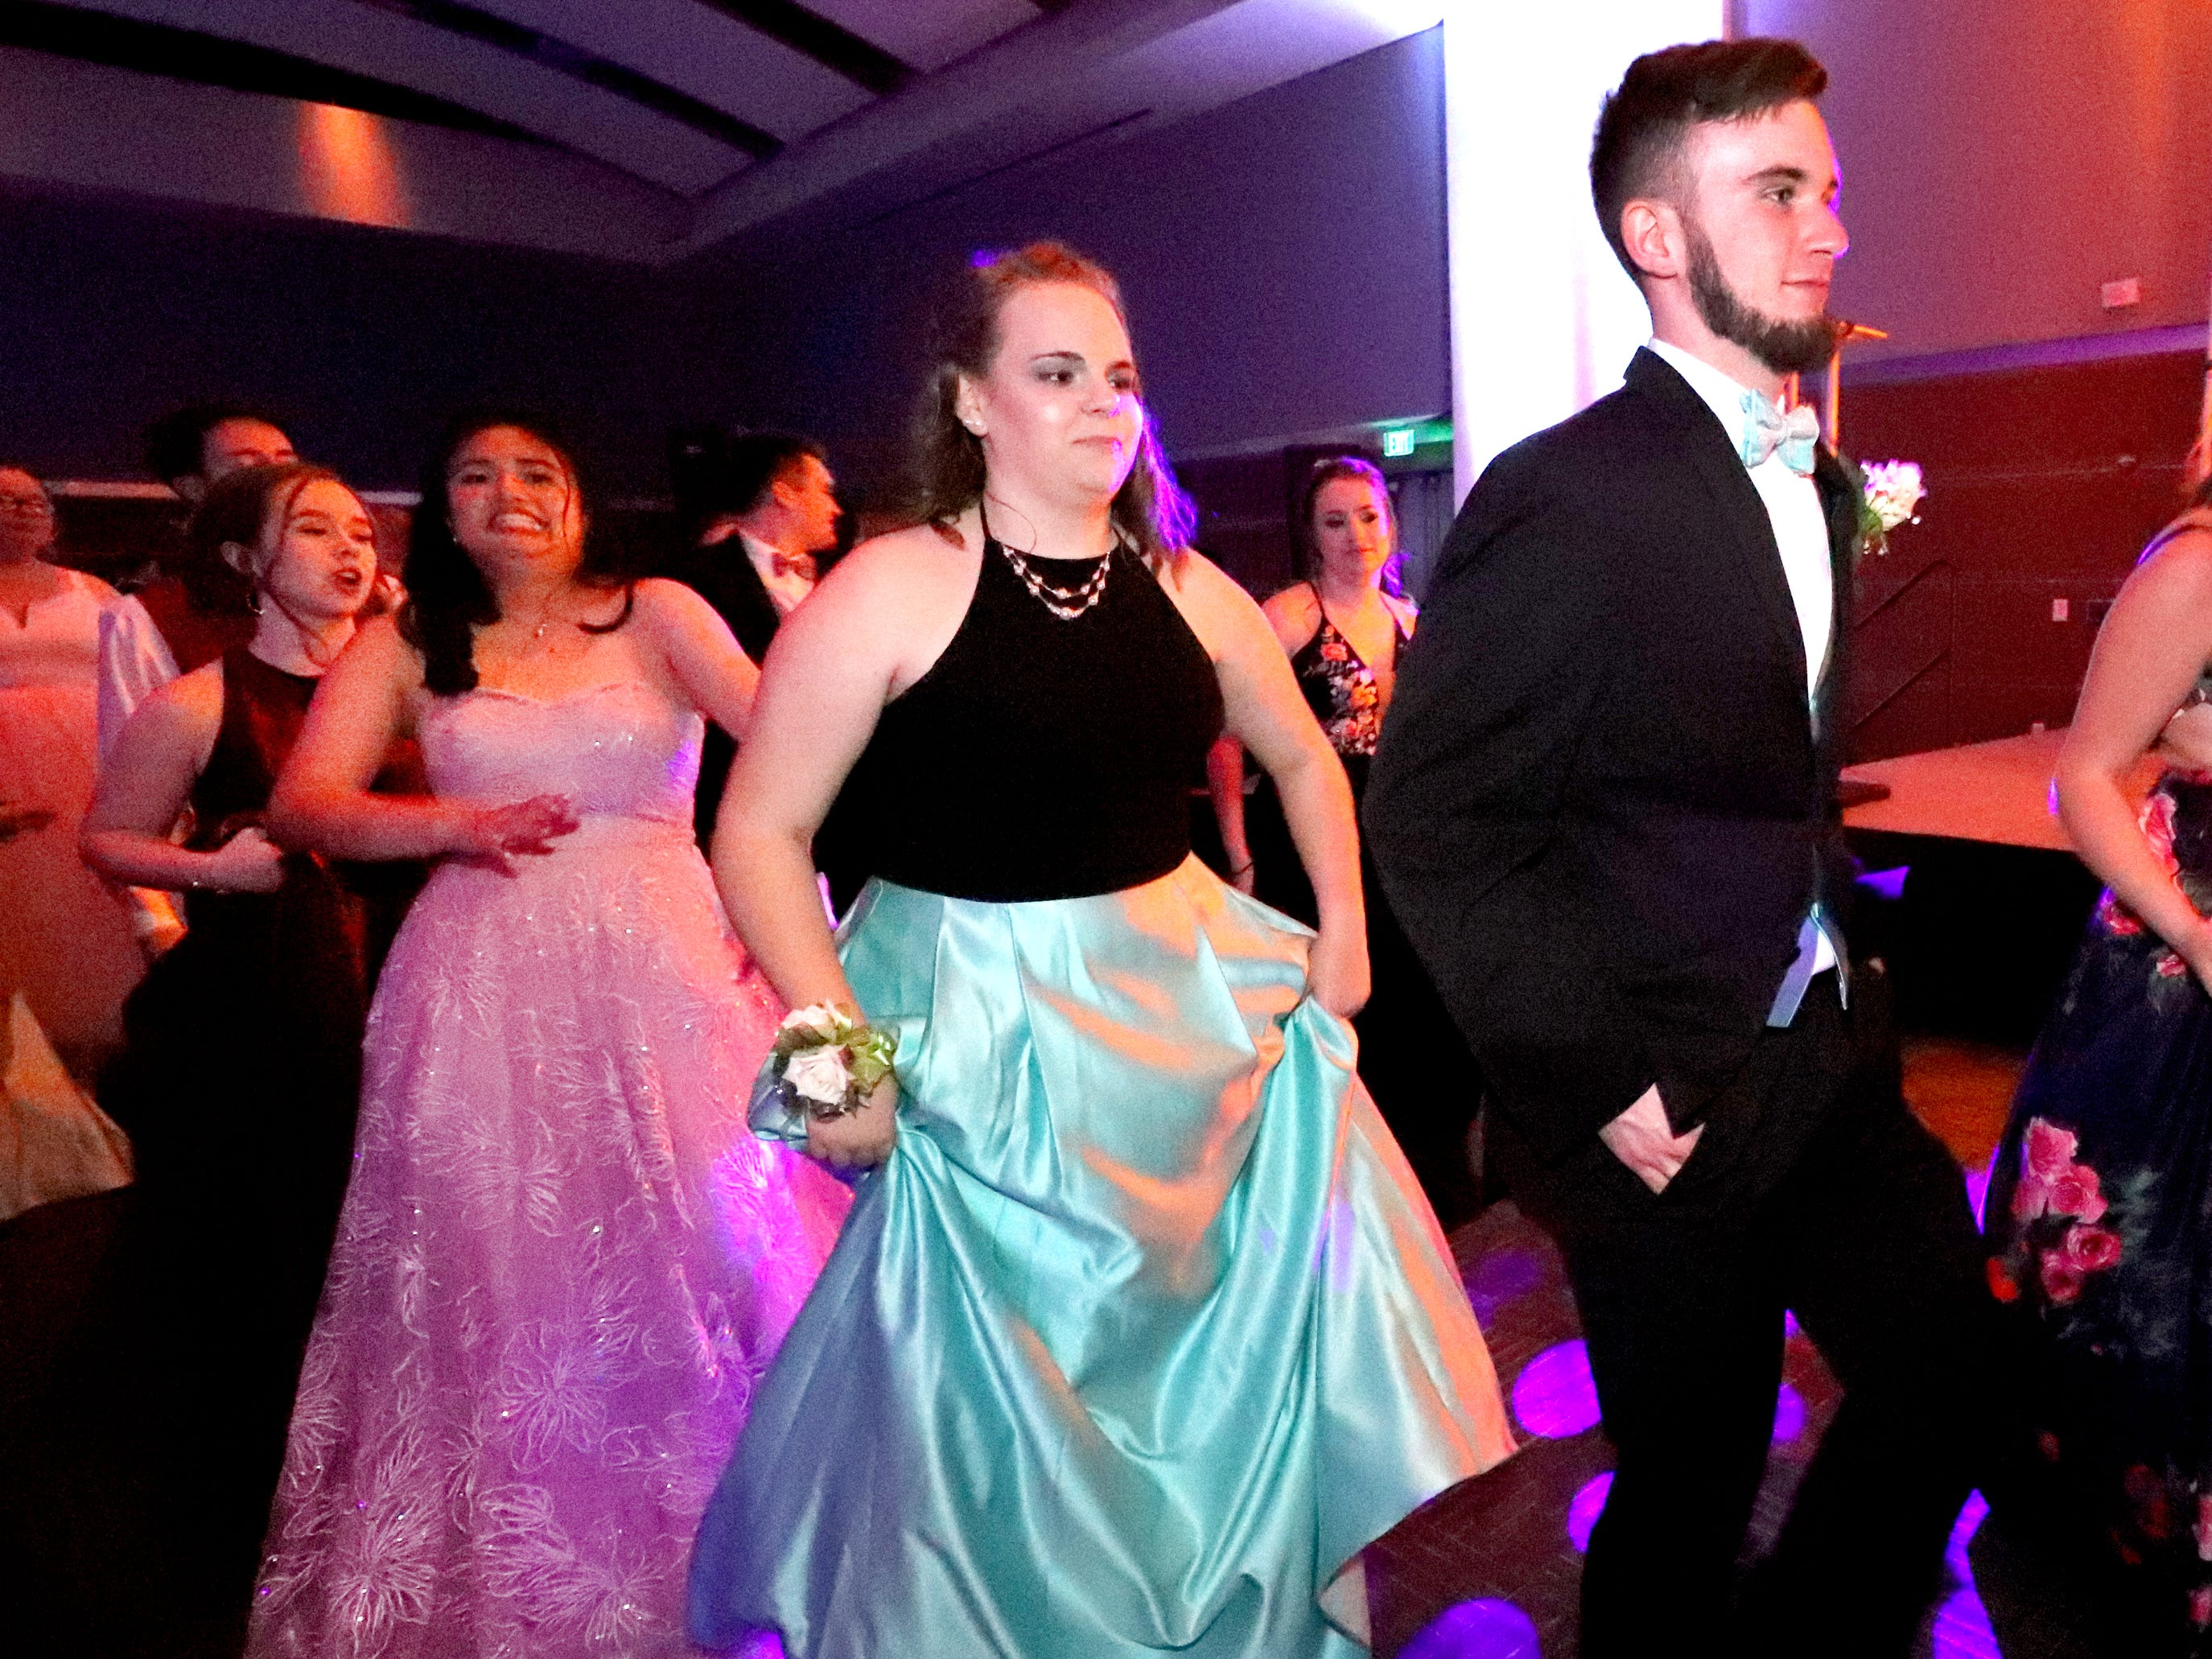 Justin Lane, right and Brianna Kane, left dance together at Blackman's prom on Friday April 12, 2019, at MTSU.